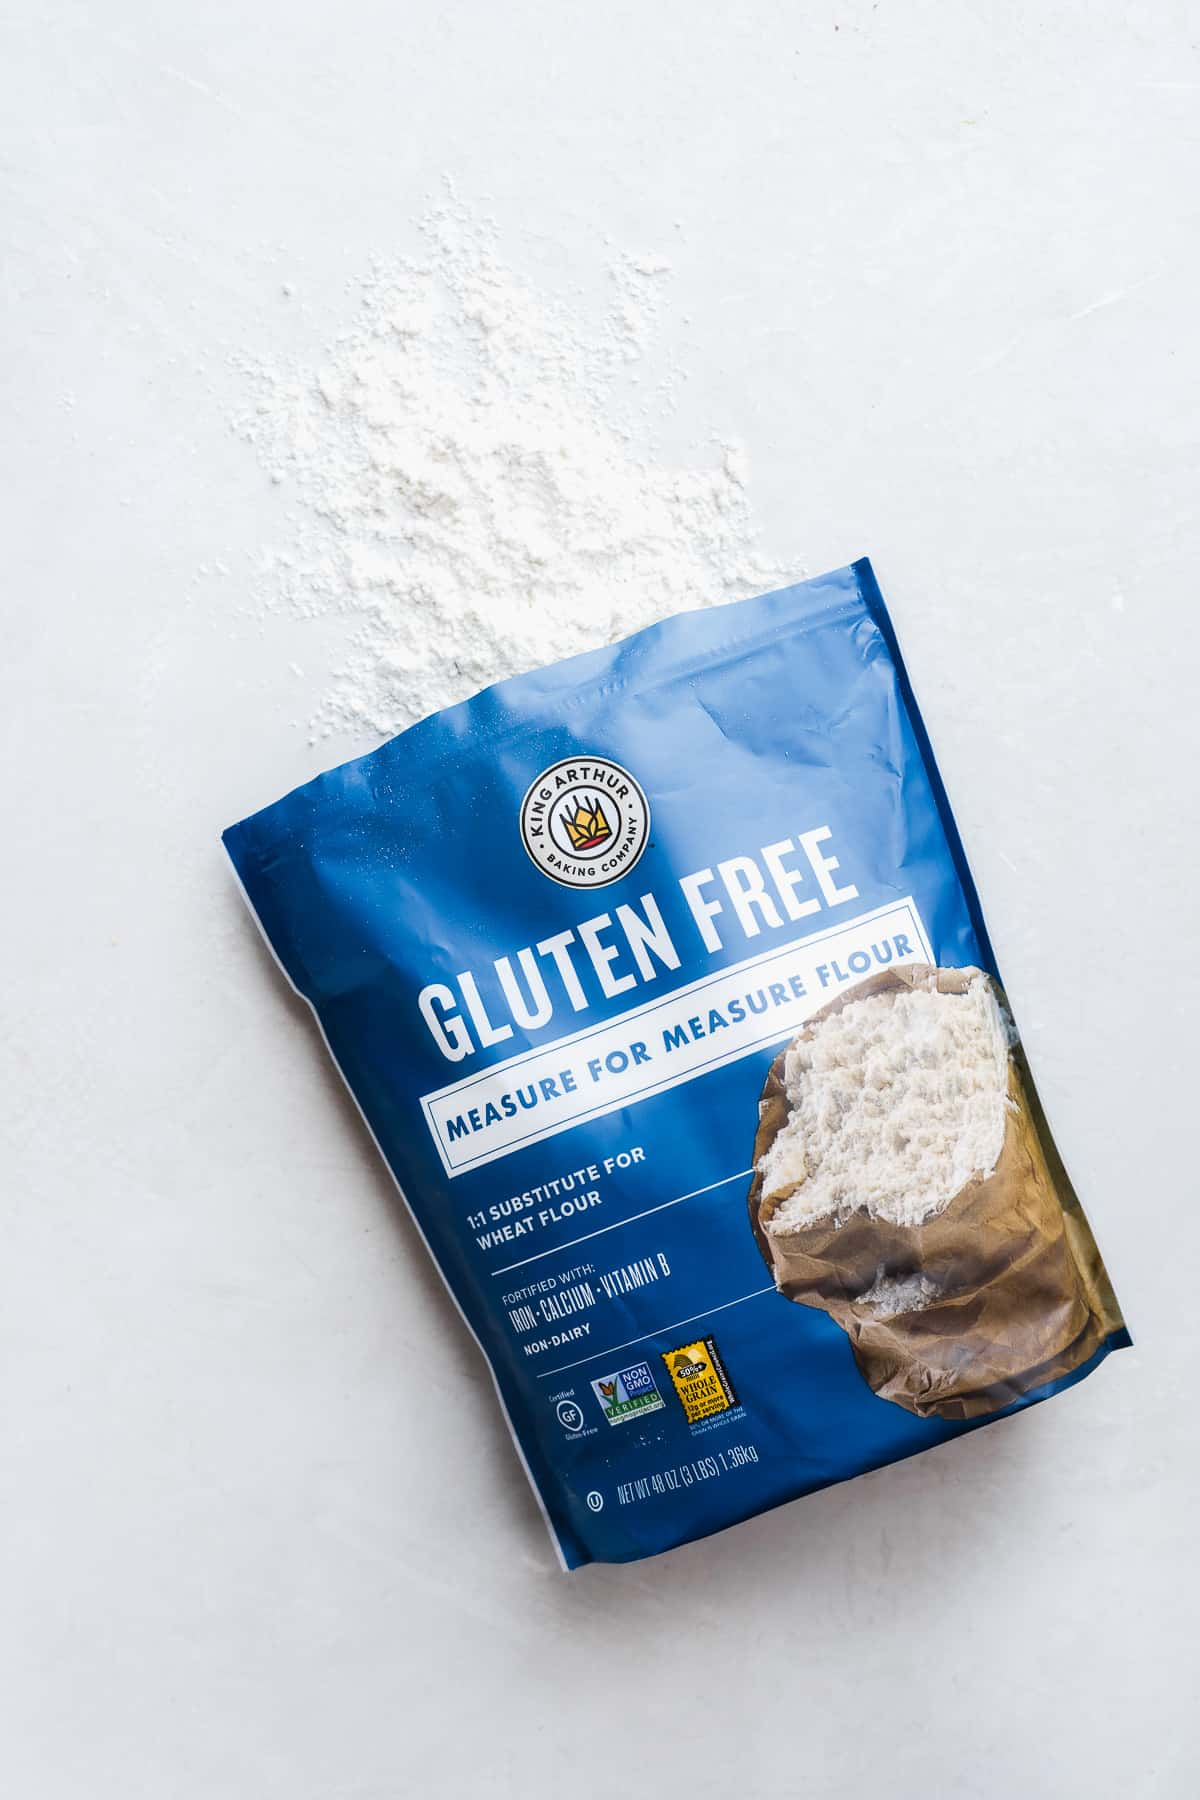 Image of blue bag of flour laying on a white surface with some flour spilling out the top.